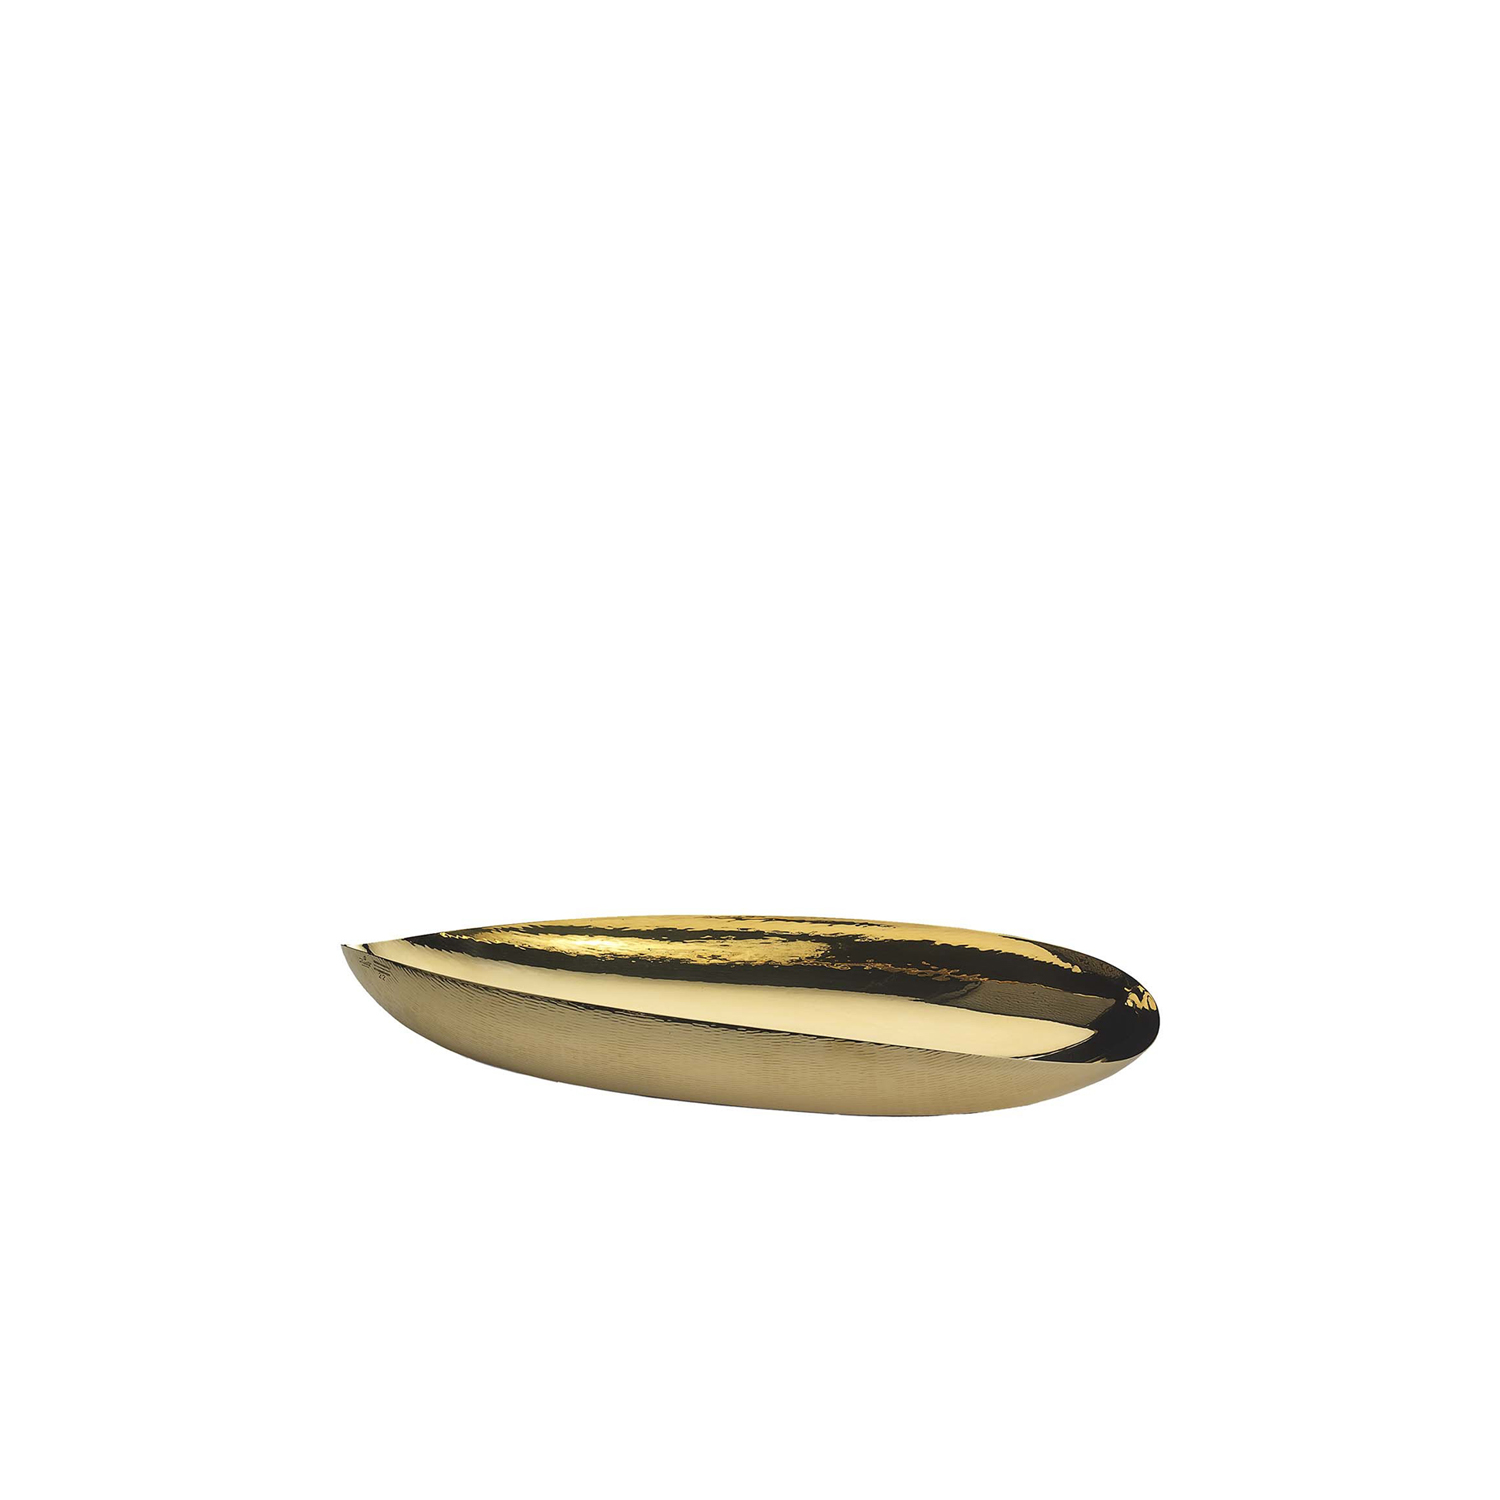 Elis Bowl - This eye-catching decorative bowl by Zanetto is a testament of traditional craftsmanship and modern design sensibility. Handcrafted of hammered brass with a polished finish, this bowl is defined by its elegant, elliptical-shape and highly-reflective surface, creating brilliant effects with light. Perfect as a standalone piece or for displaying potpourri and trinkets, this piece will bring elegance to any decor. Also available in polished copper and silver. | Matter of Stuff